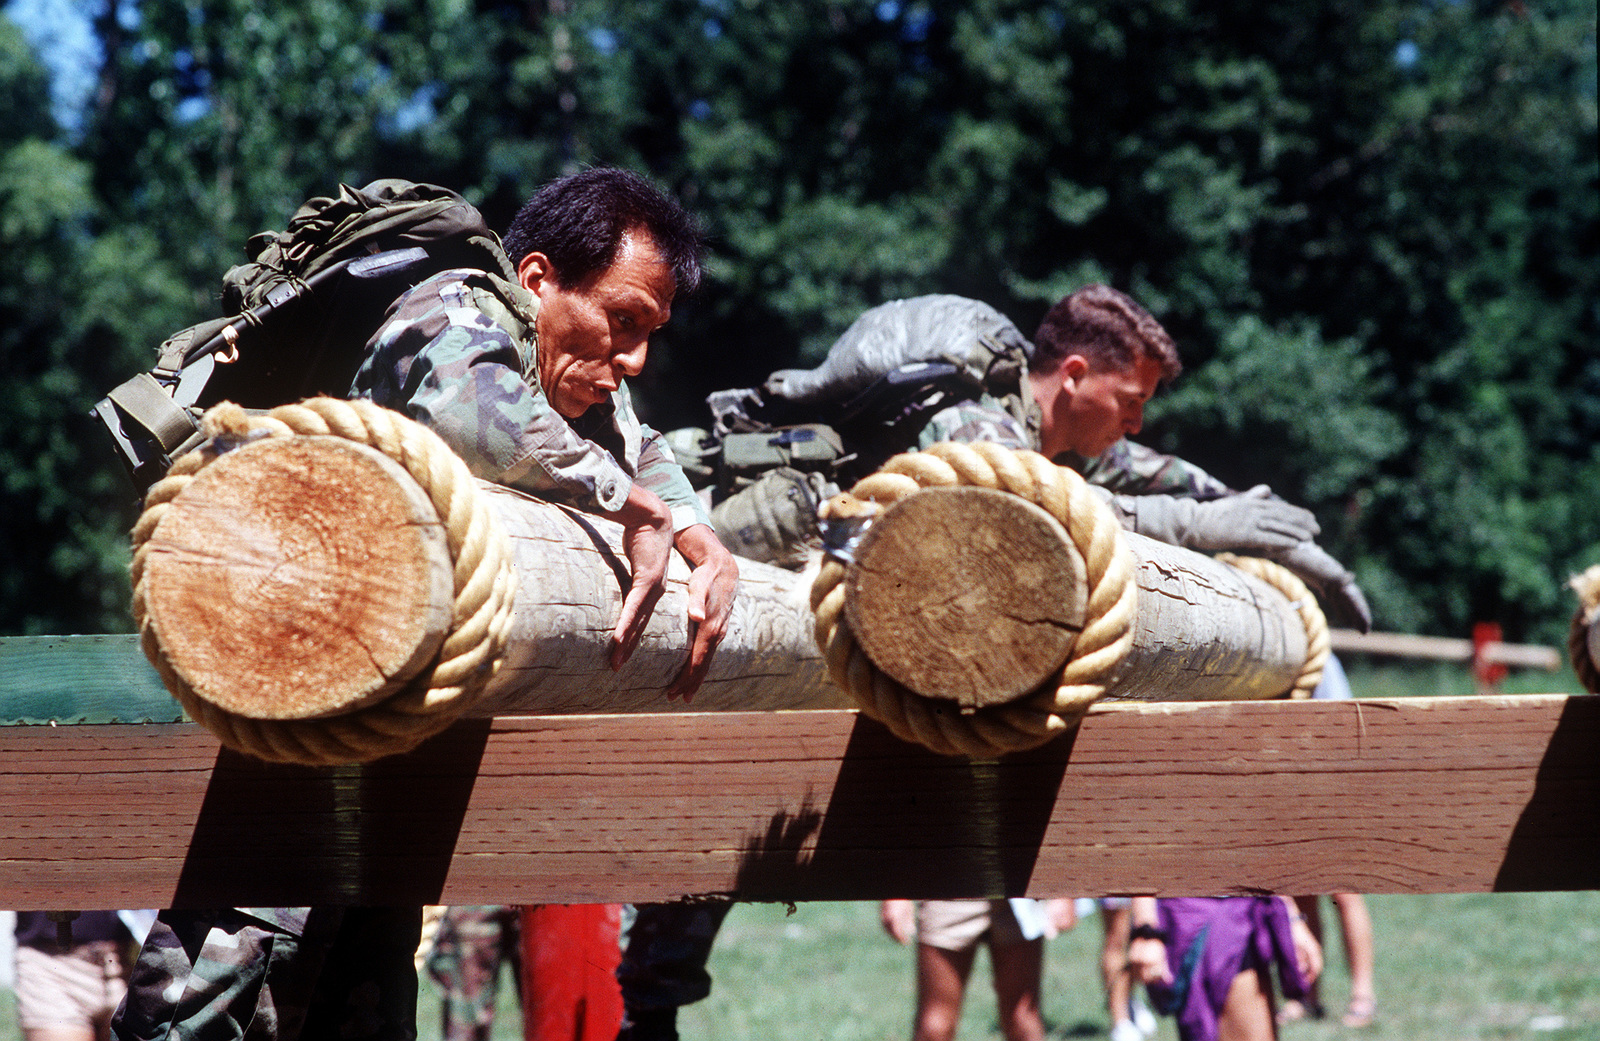 United States Air Force Combat Controllers deployed from the 58th Special Operations Wing, Kirtland Air Force Base, New Mexico, compete against other combat control teams in the grueling obstacle course during the annual mobility competition, RODEO '94 held at McChord Air Force Base, Washington